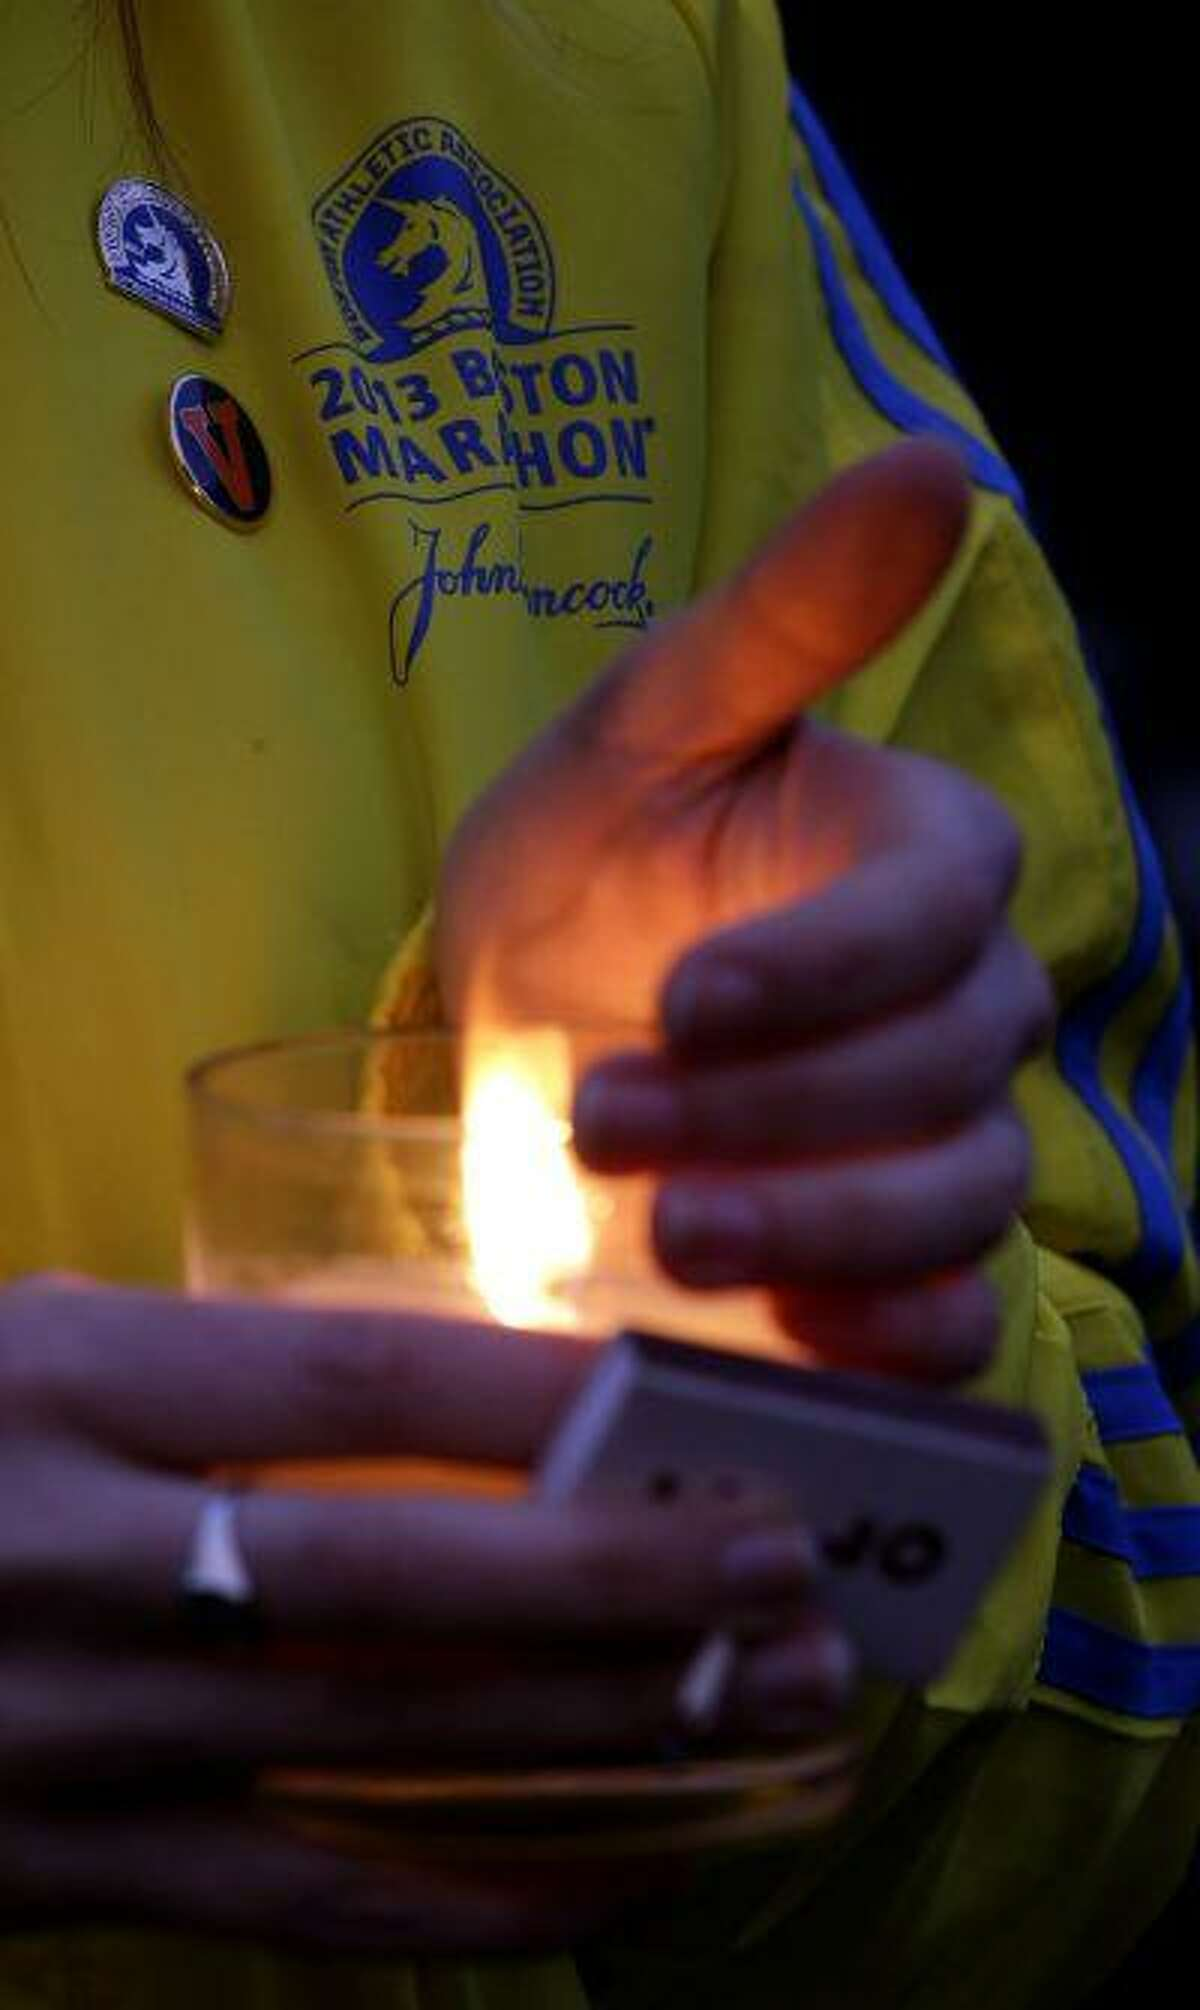 Lauren Jones, 30, of Boston, who volunteered during the Boston Marathon and was three blocks from the site of the explosions, holds a candle during a vigil for the victims at Boston Common, Tuesday, April 16, 2013. (AP Photo/Julio Cortez)